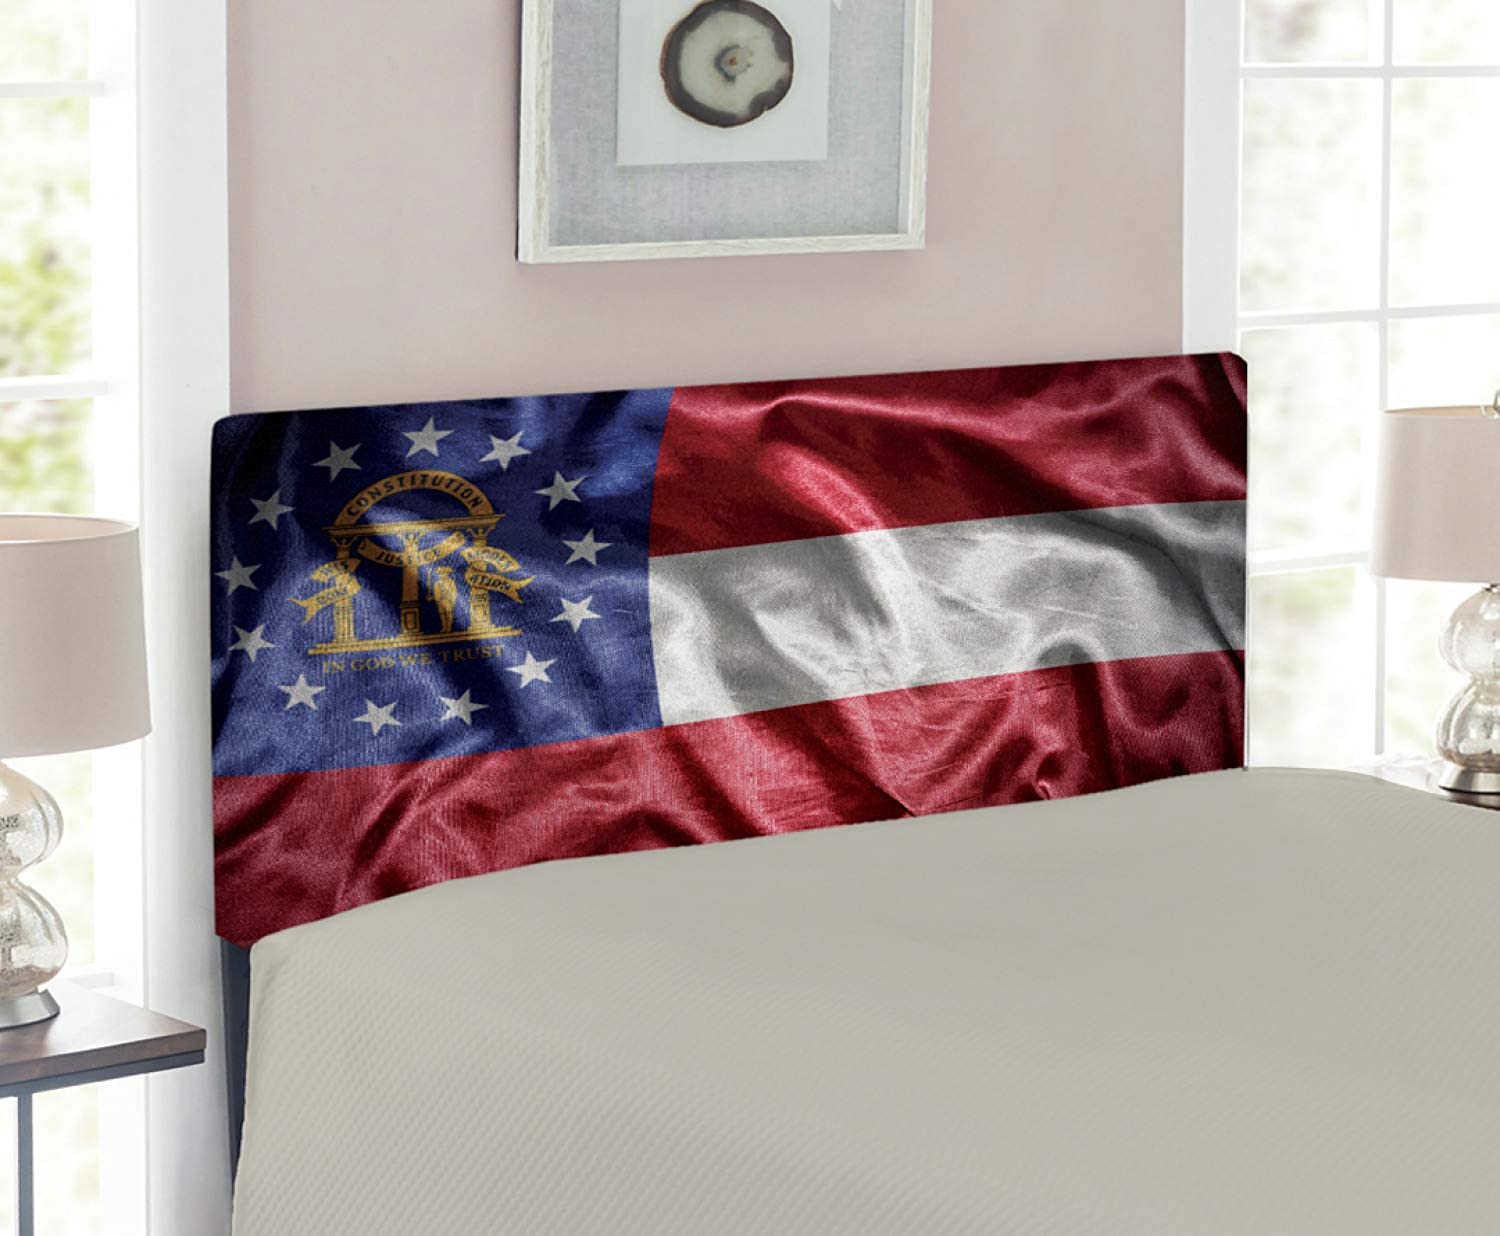 Lunarable American Headboard for Twin Size Bed, Waving Georgia State Flag Stripes State's Coat of Arms Patriotic, Upholstered Decorative Metal Headboard with Memory Foam, Navy bluee Red and White